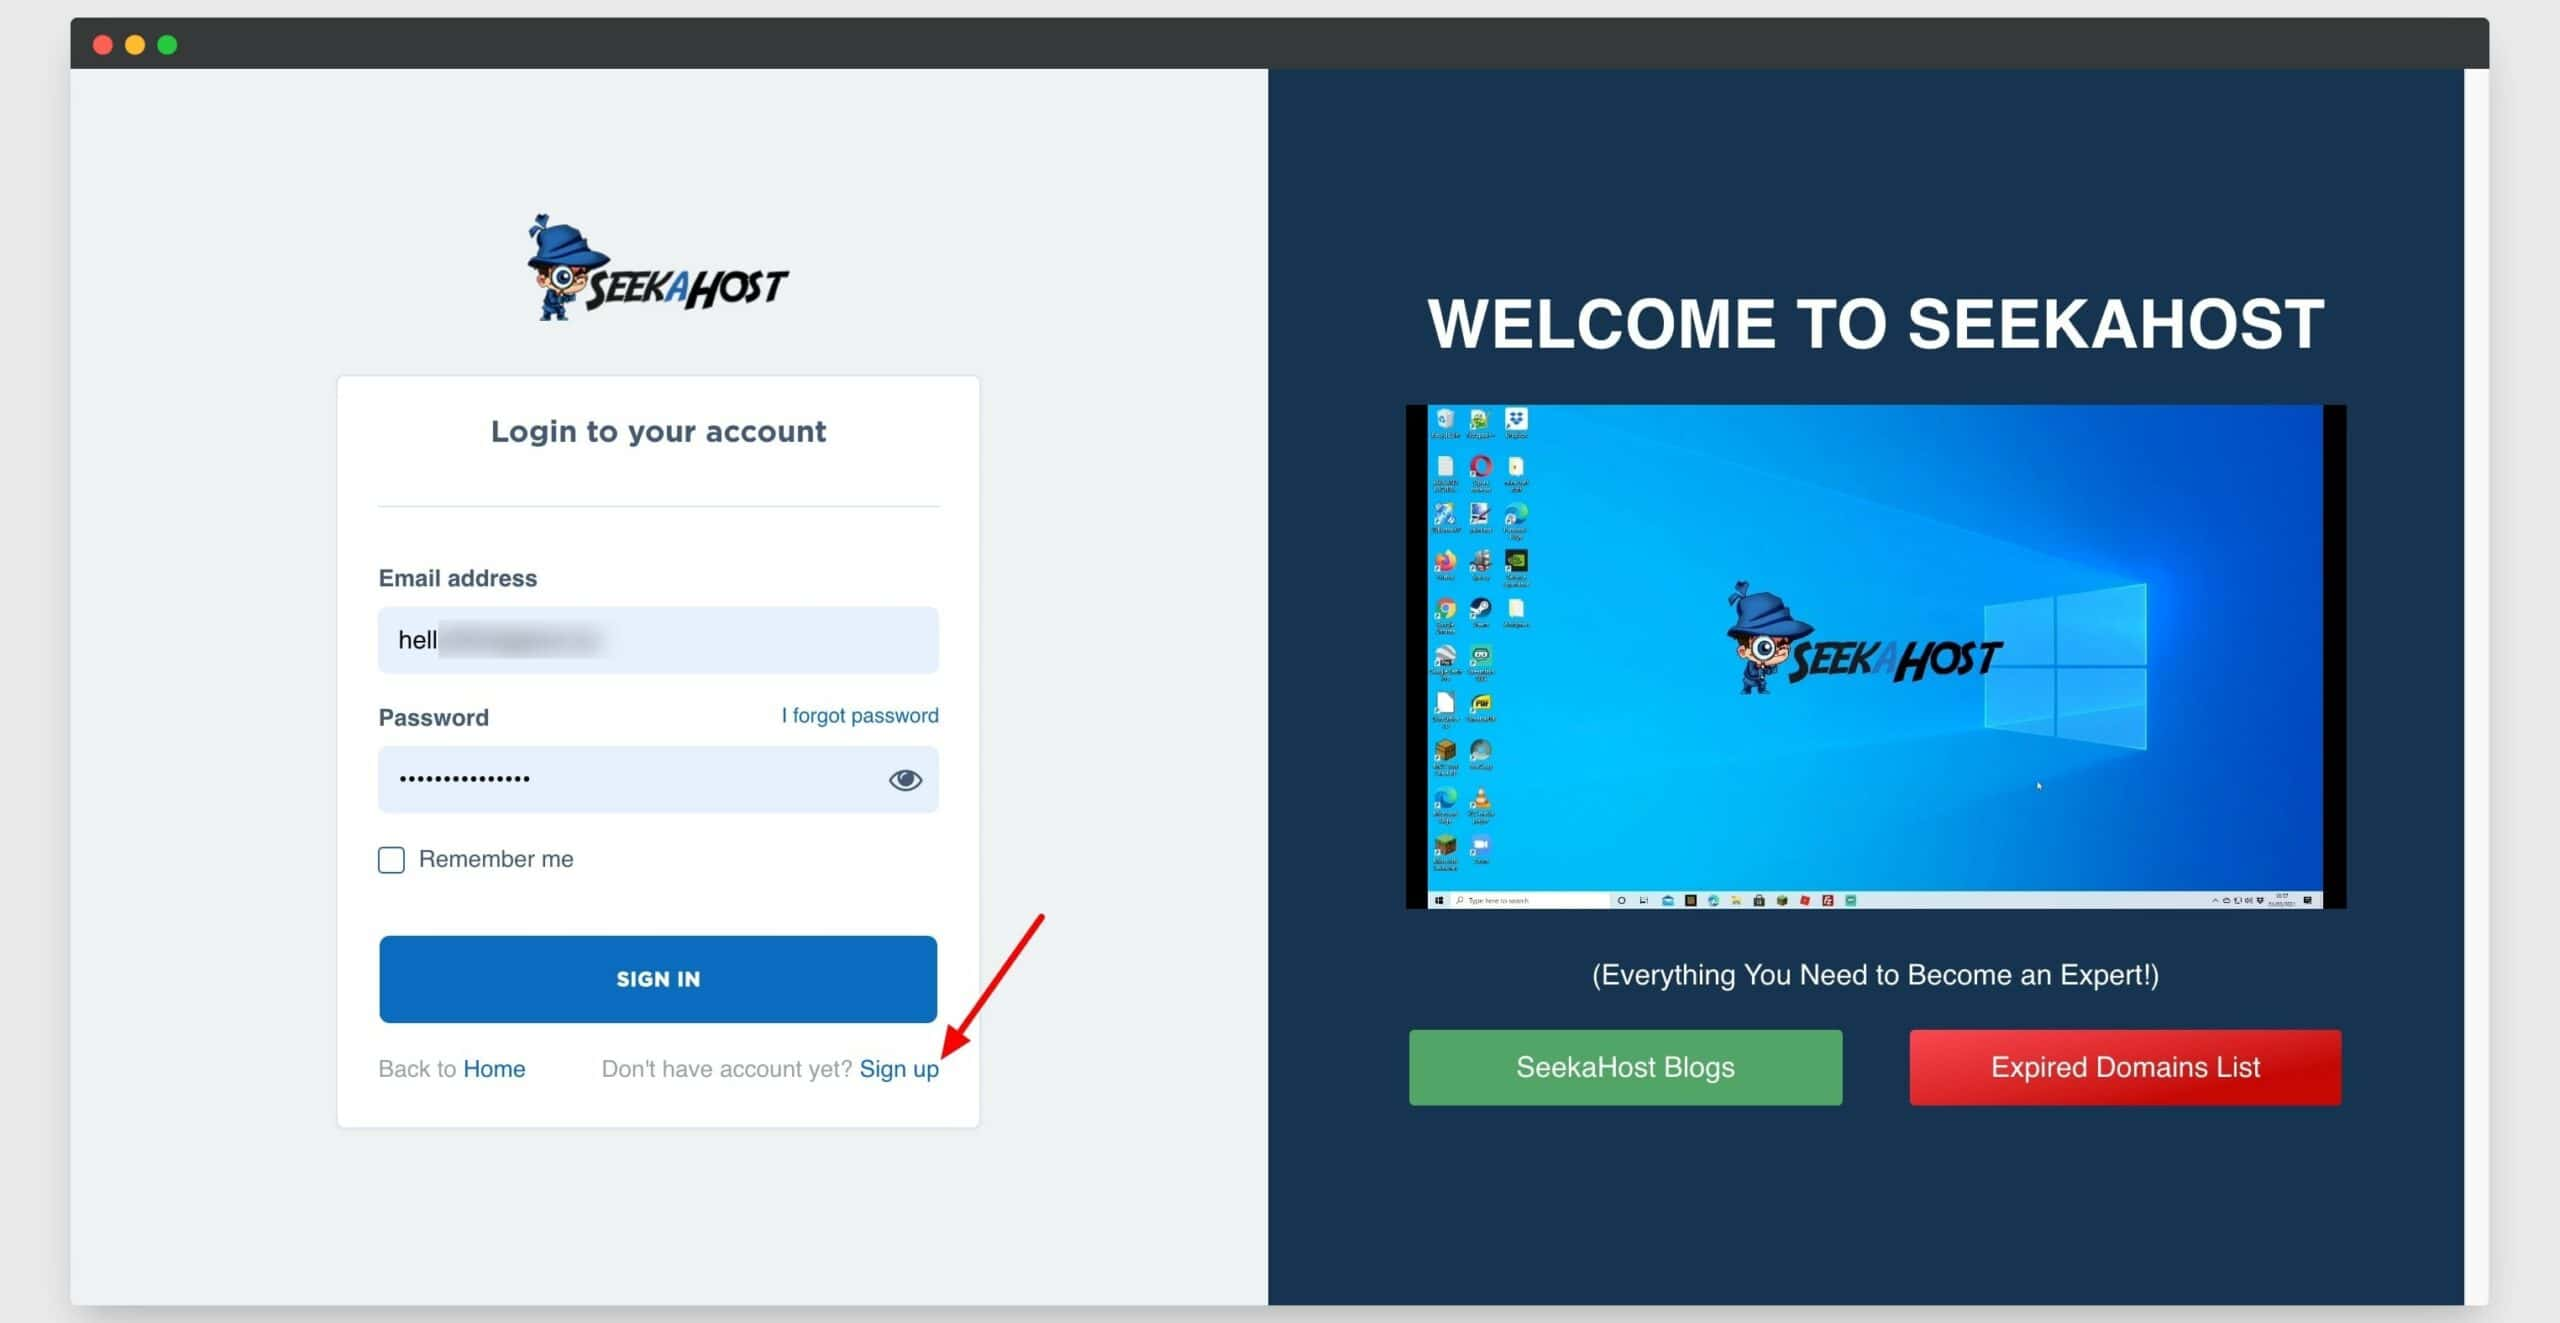 signup to seekahost panel